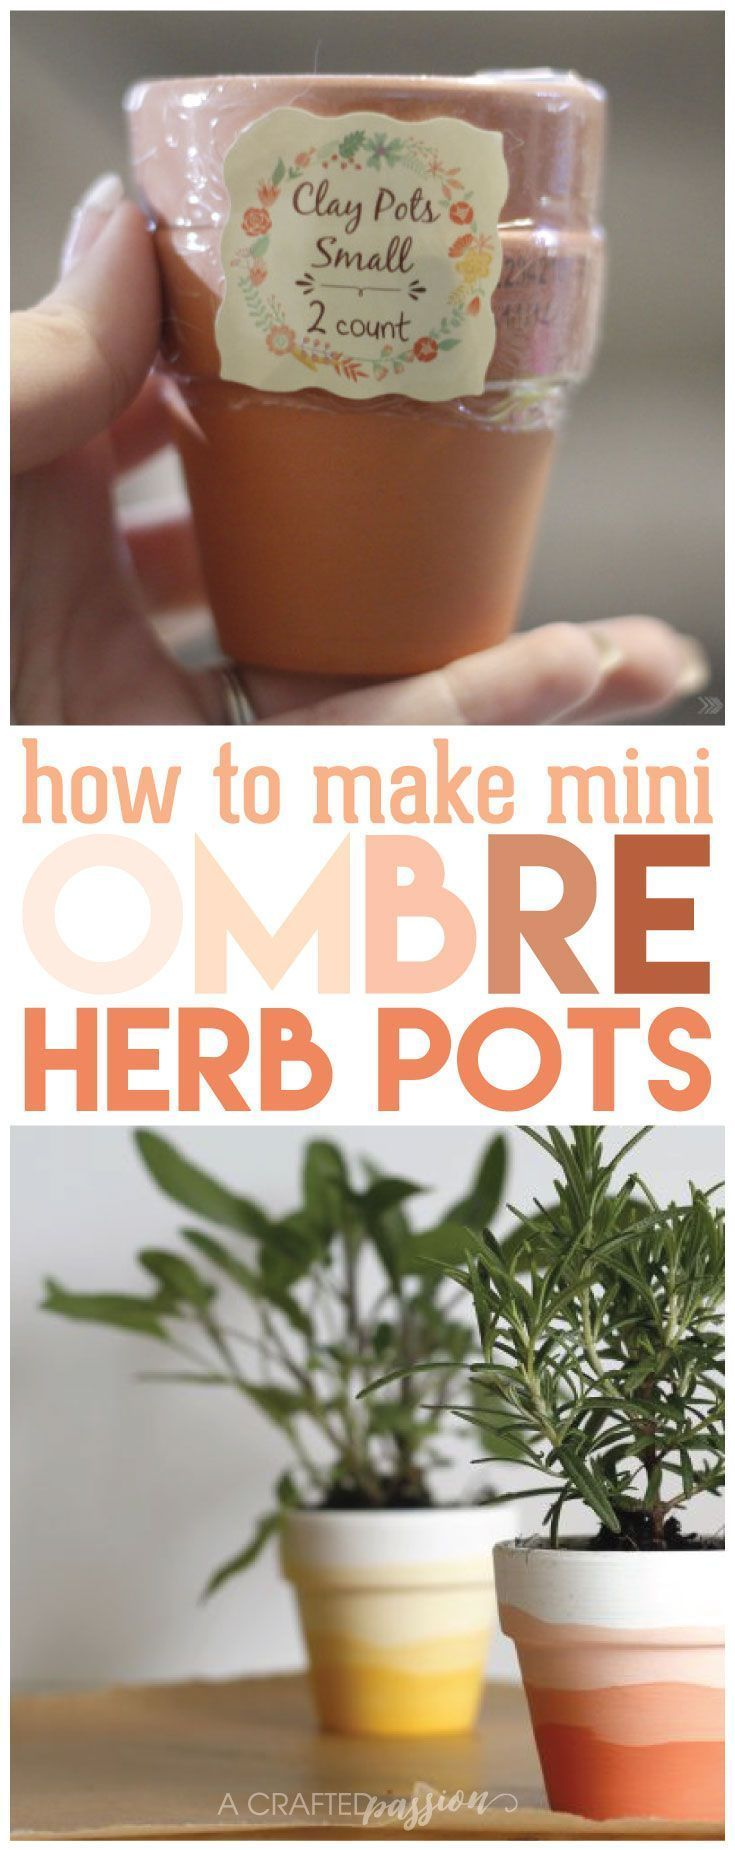 Make a set of these mini ombre herb pots for under $5! An easy DIY craft idea to do with the family.